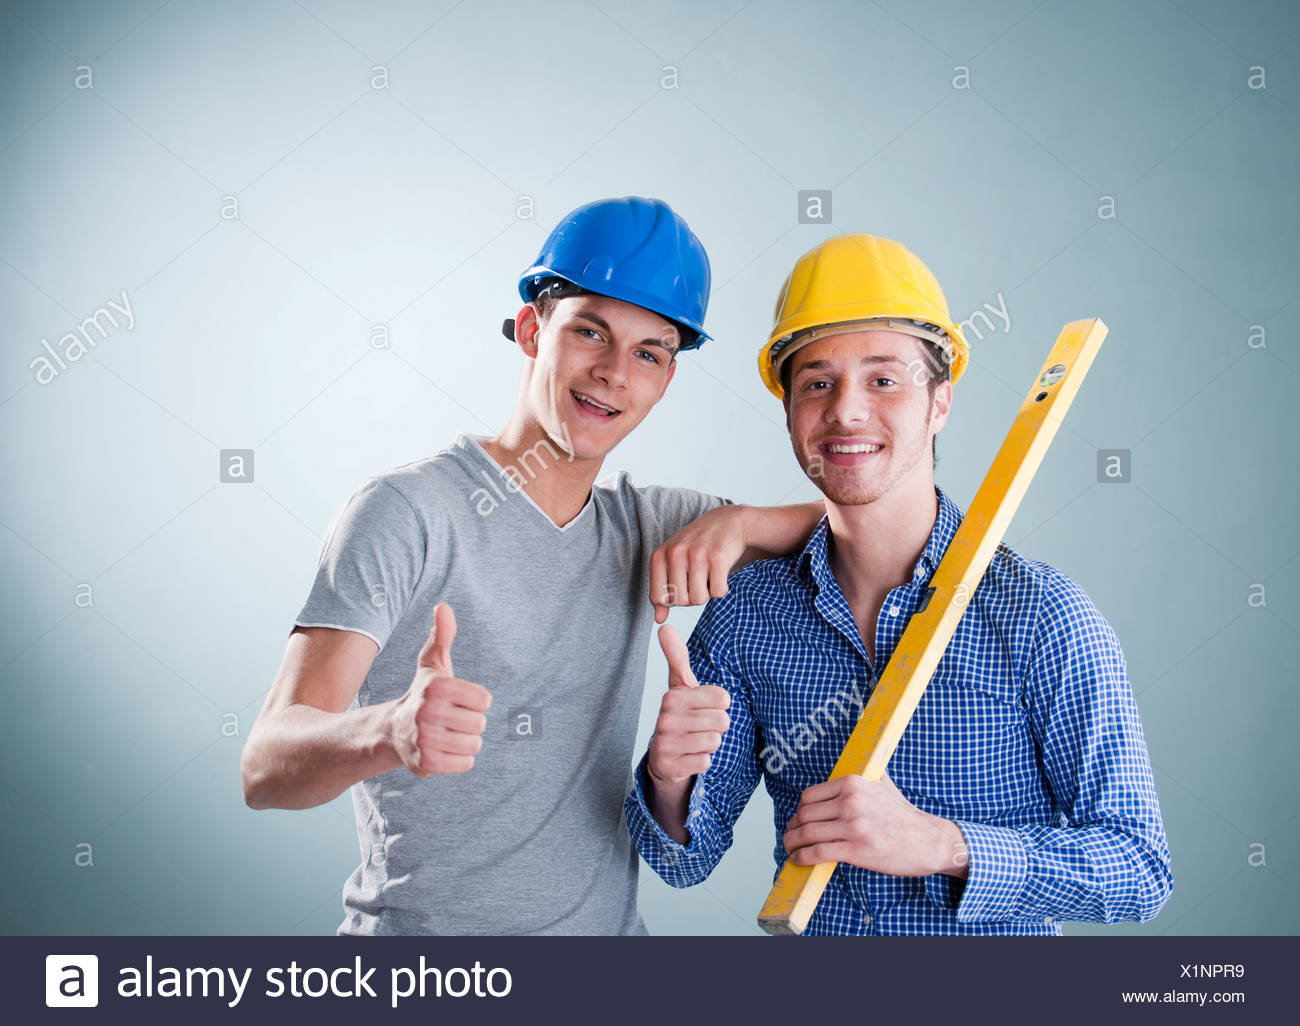 Two young tradesmen holding a spirit level - Stock Image